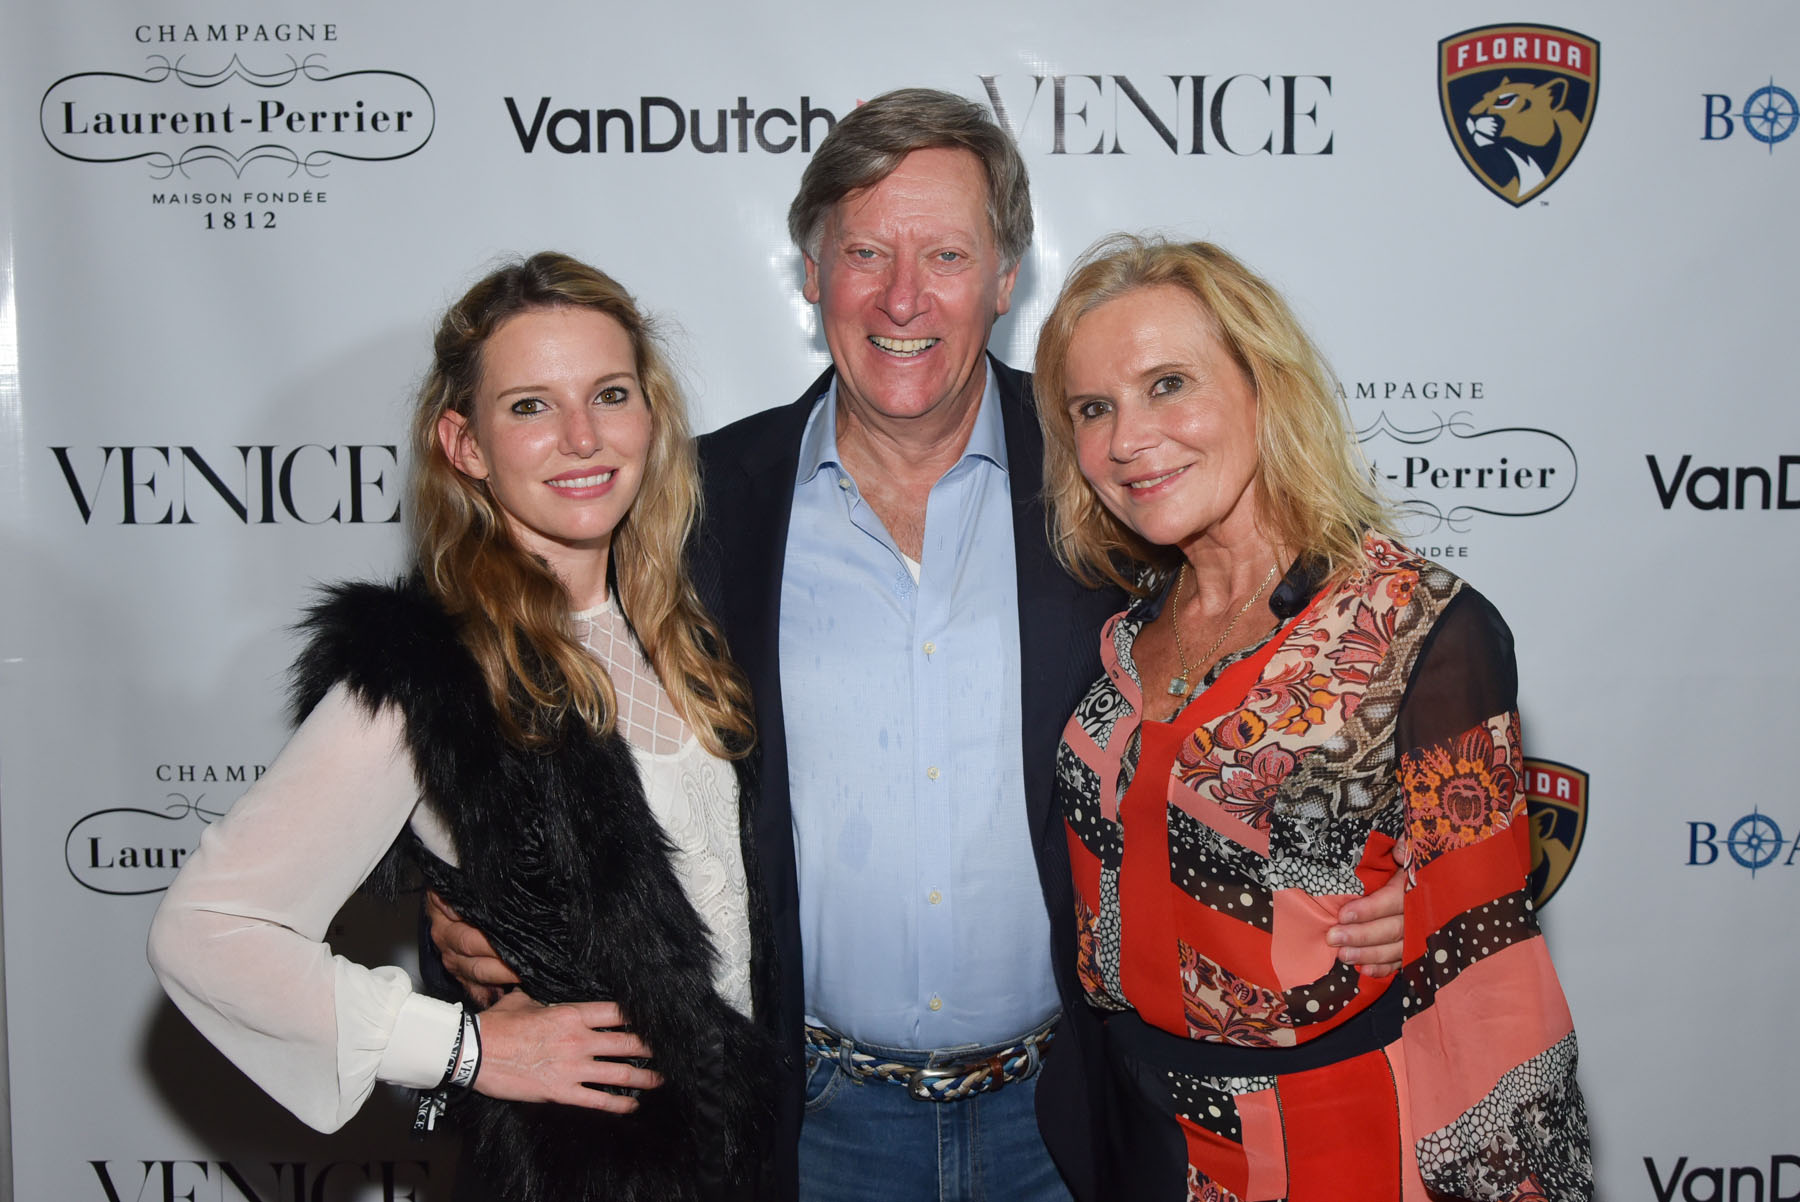 dr-barbara-manchec-richard-adler-and-veronique-manchec-City-Cool-Boat-Yard-Fort-Lauderdale-Venice-Magazine